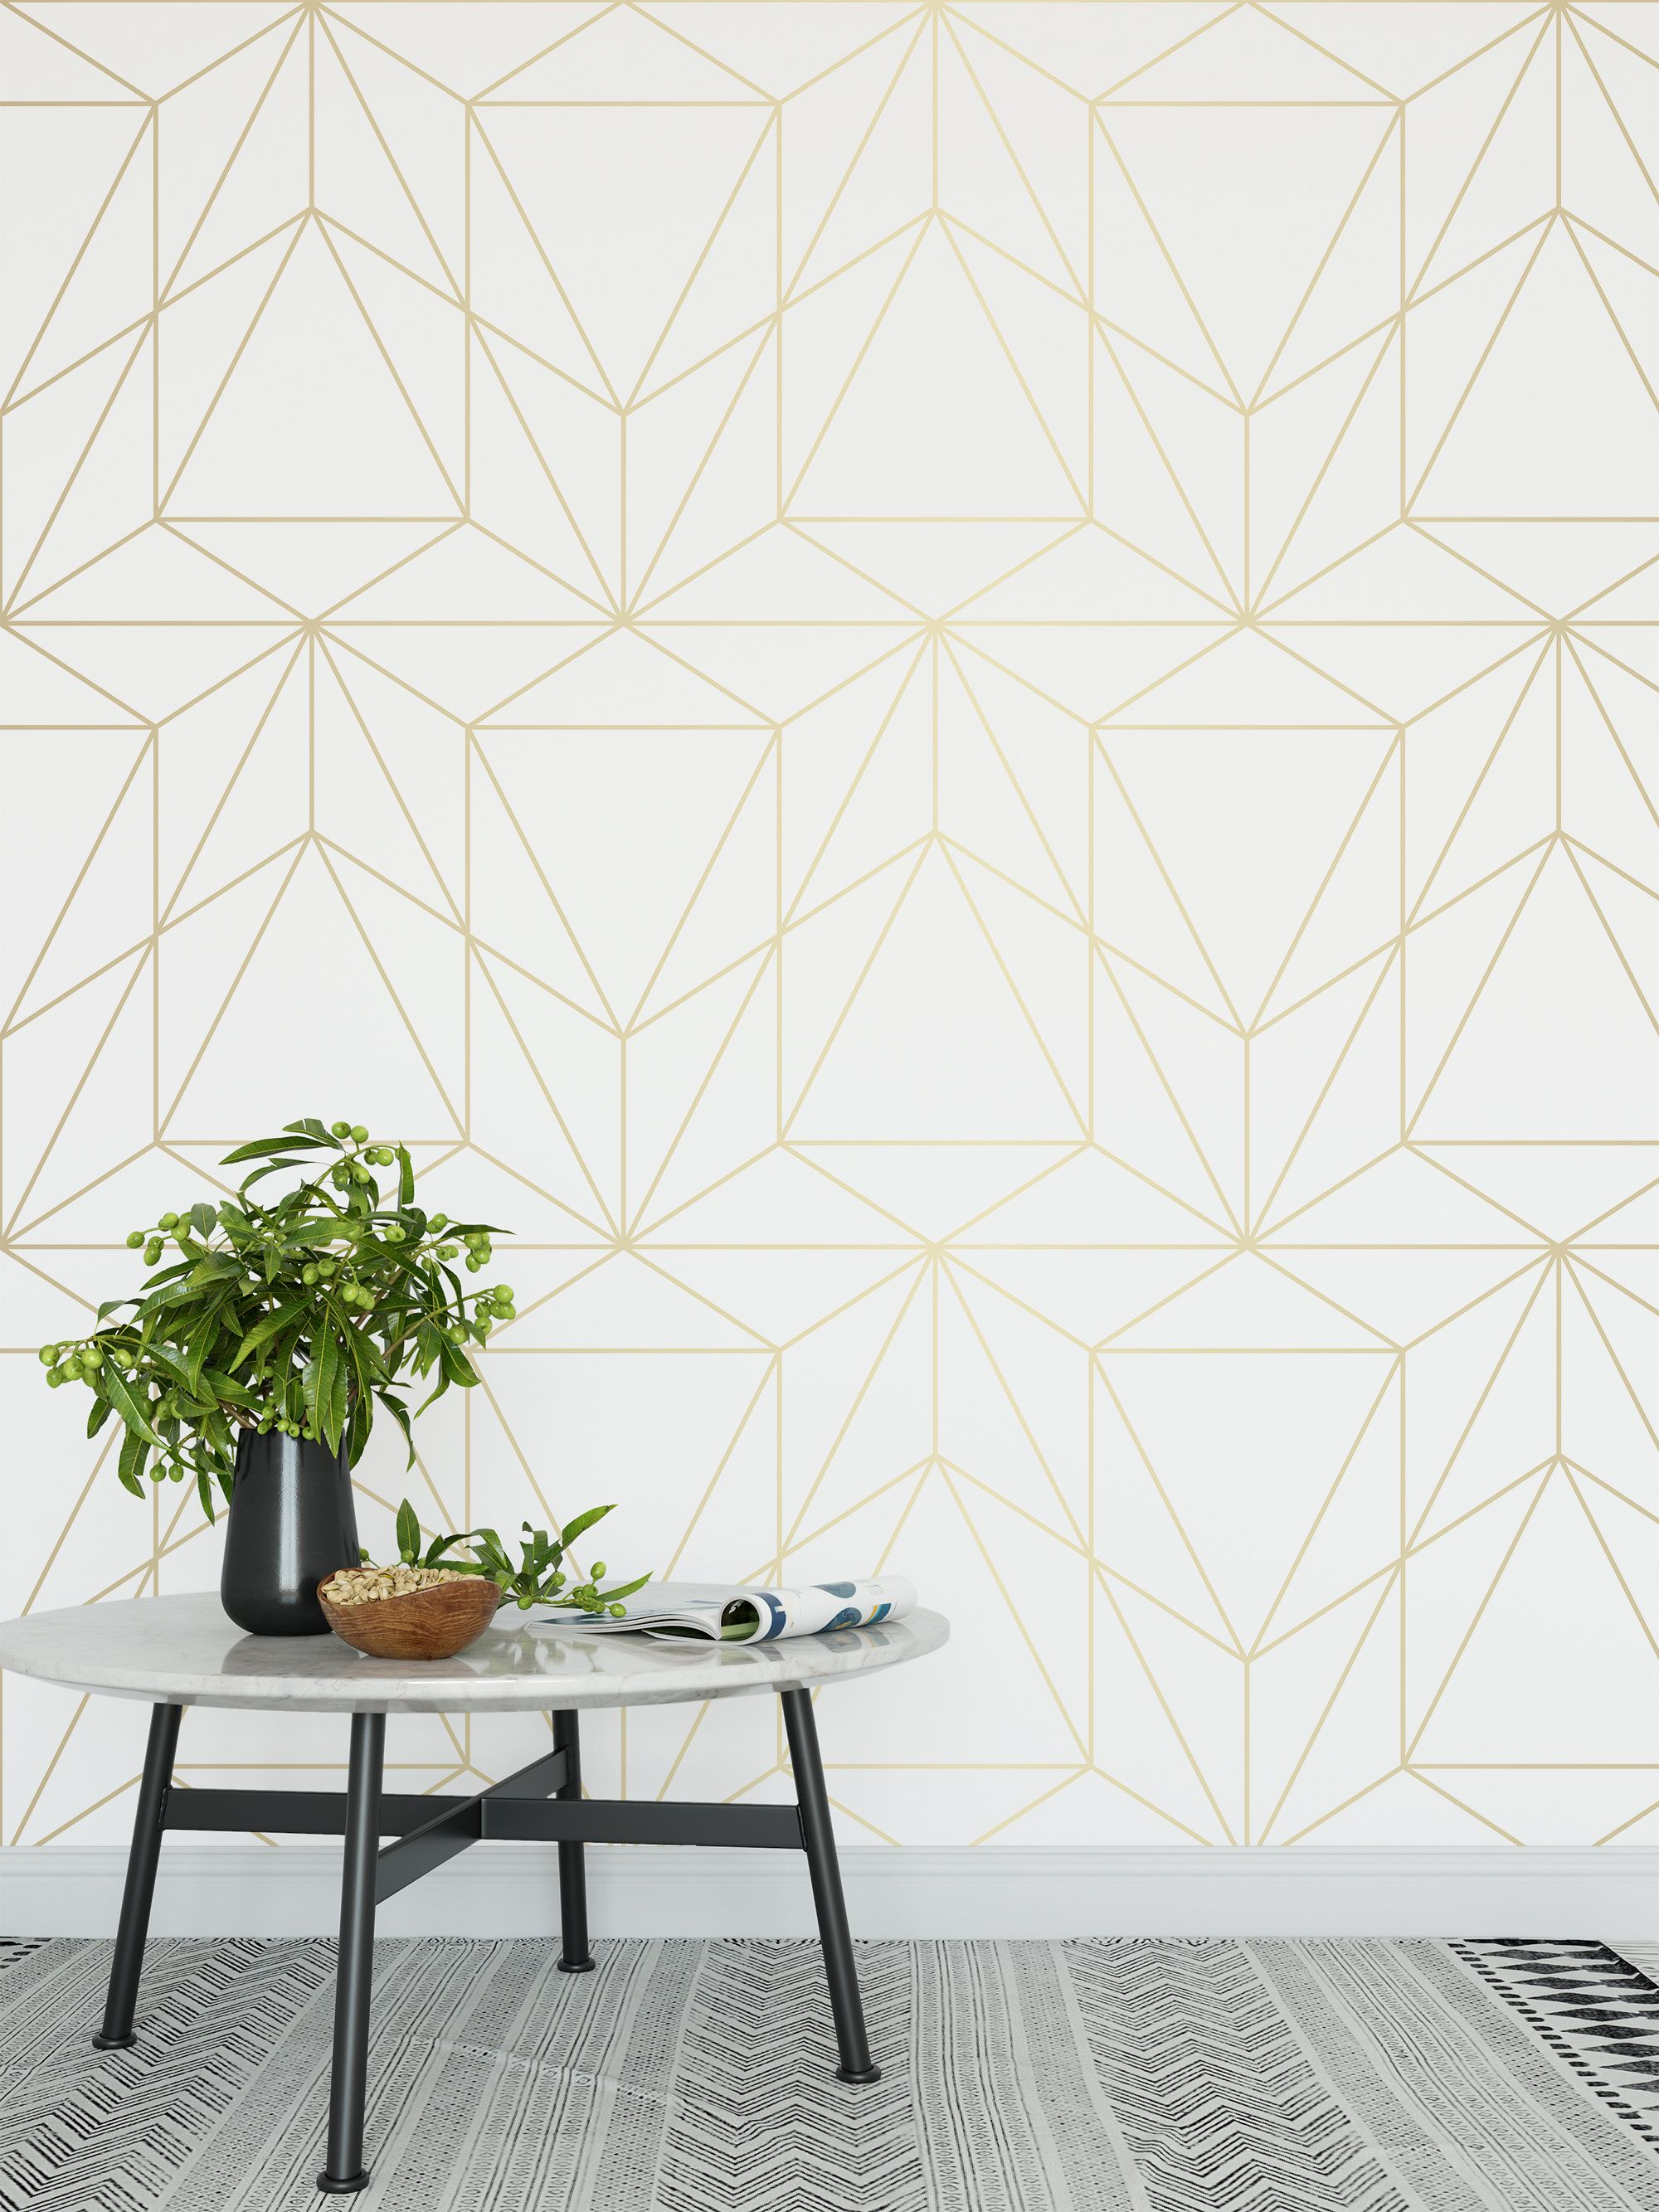 Peel And Stick Wallpaper Self Adhesive Wallpaper Removable Etsy In 2021 Gold Geometric Wallpaper White And Gold Wallpaper Geometric Wallpaper